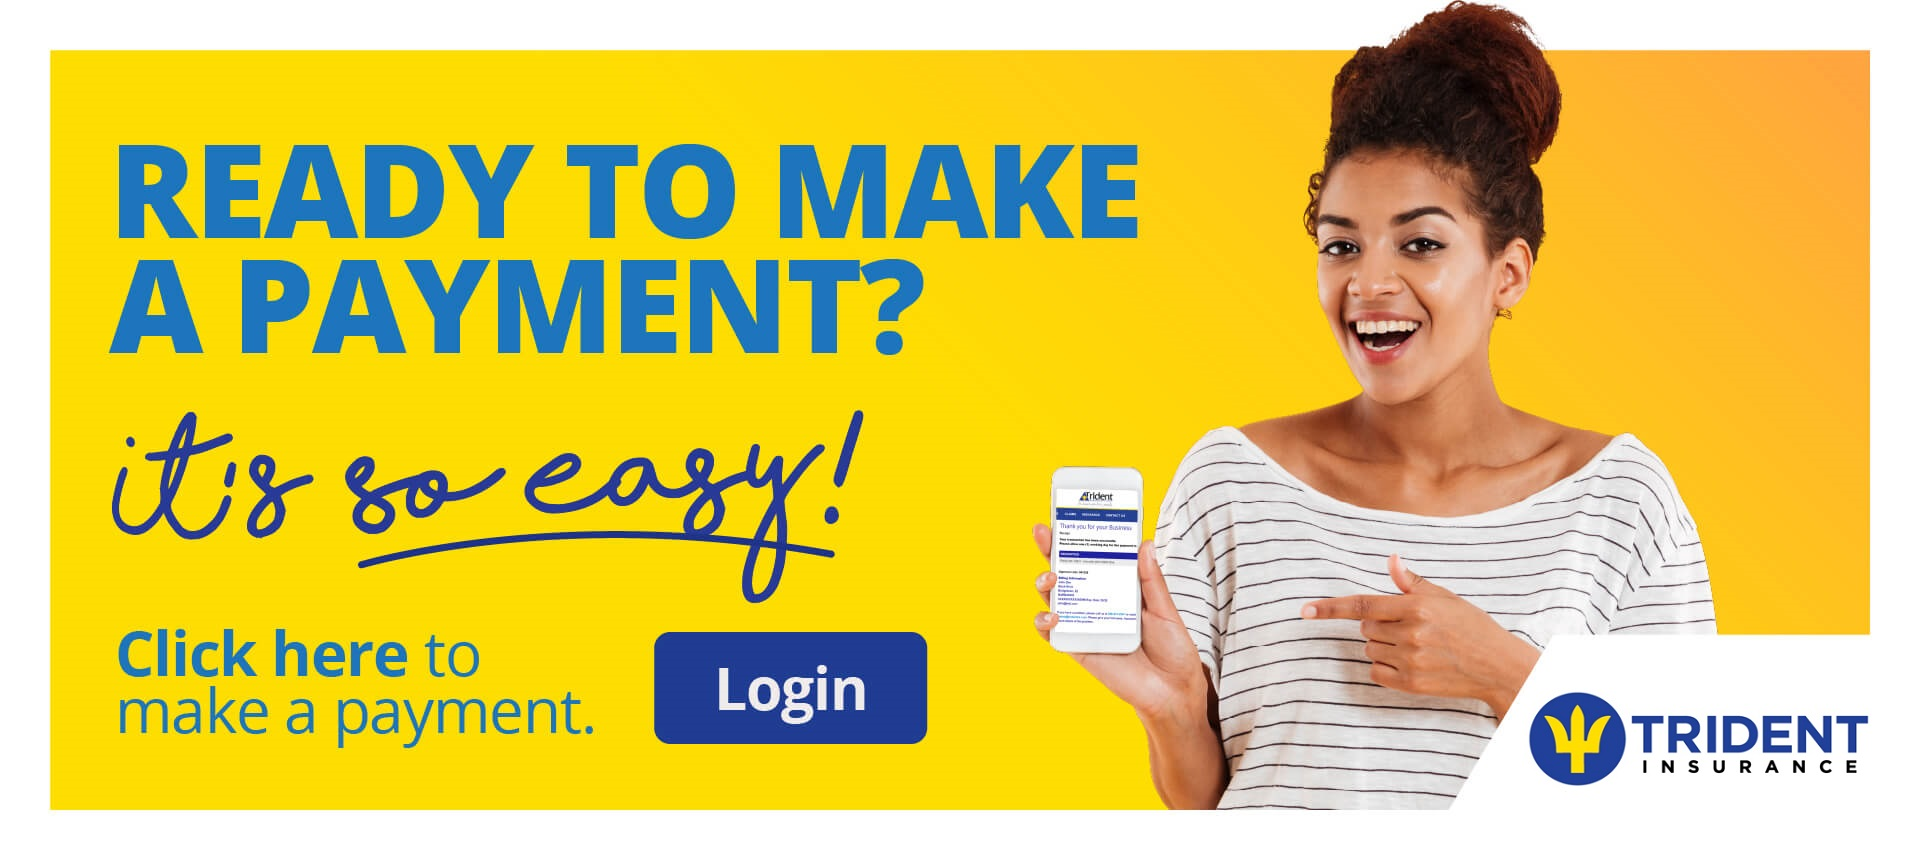 Trident Insurance - Make a Payment